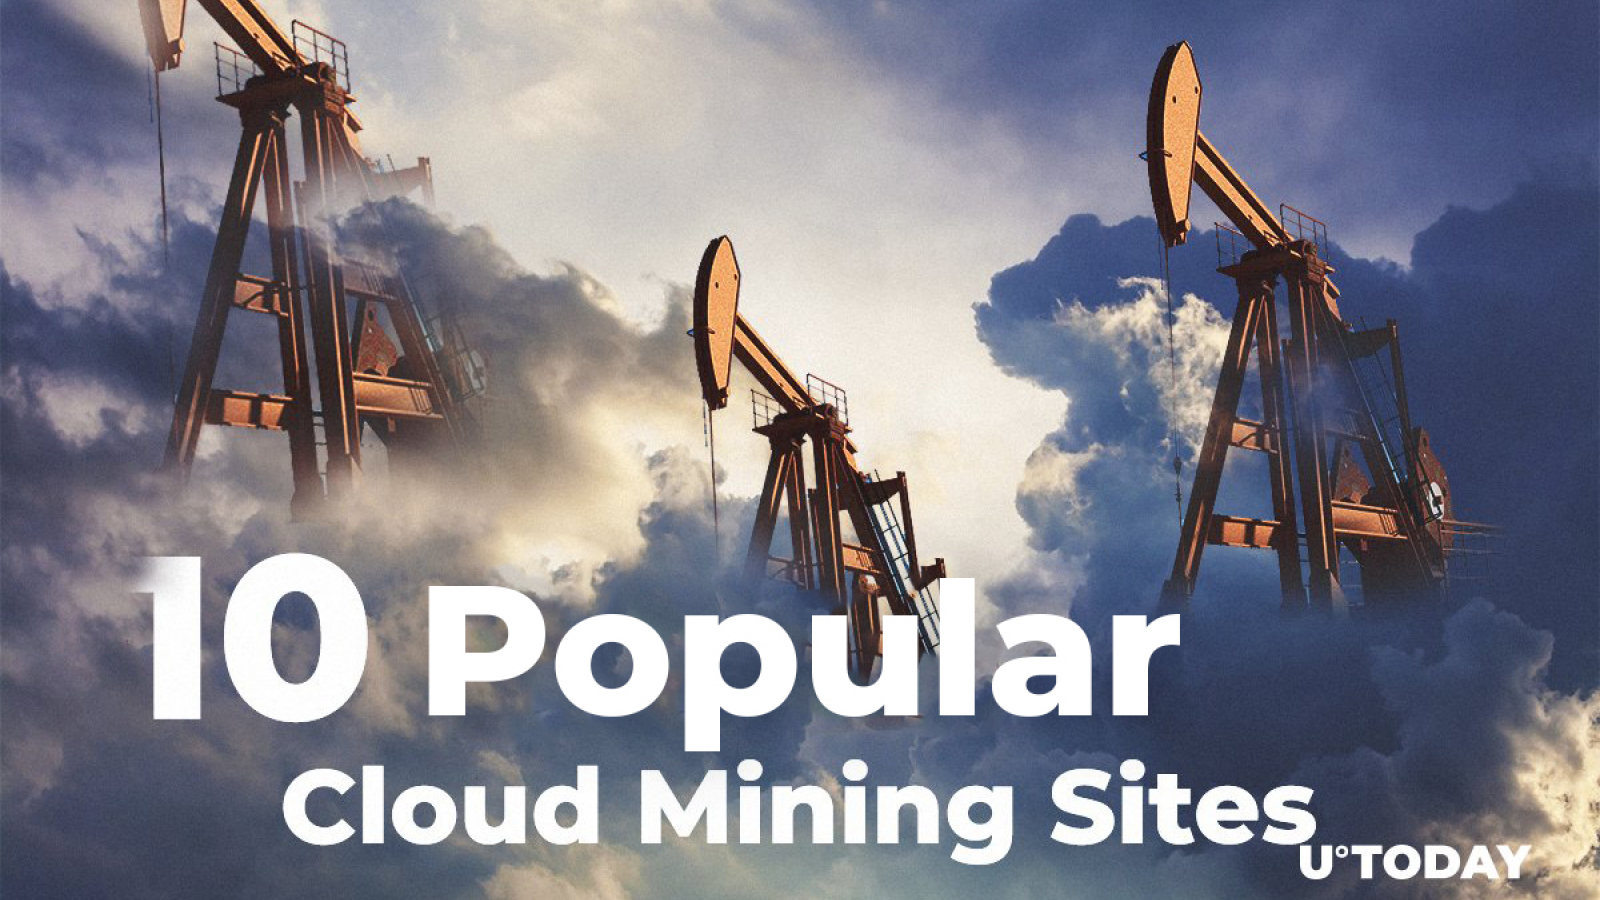 10 Popular Cloud Mining Sites in 2019 - Updated